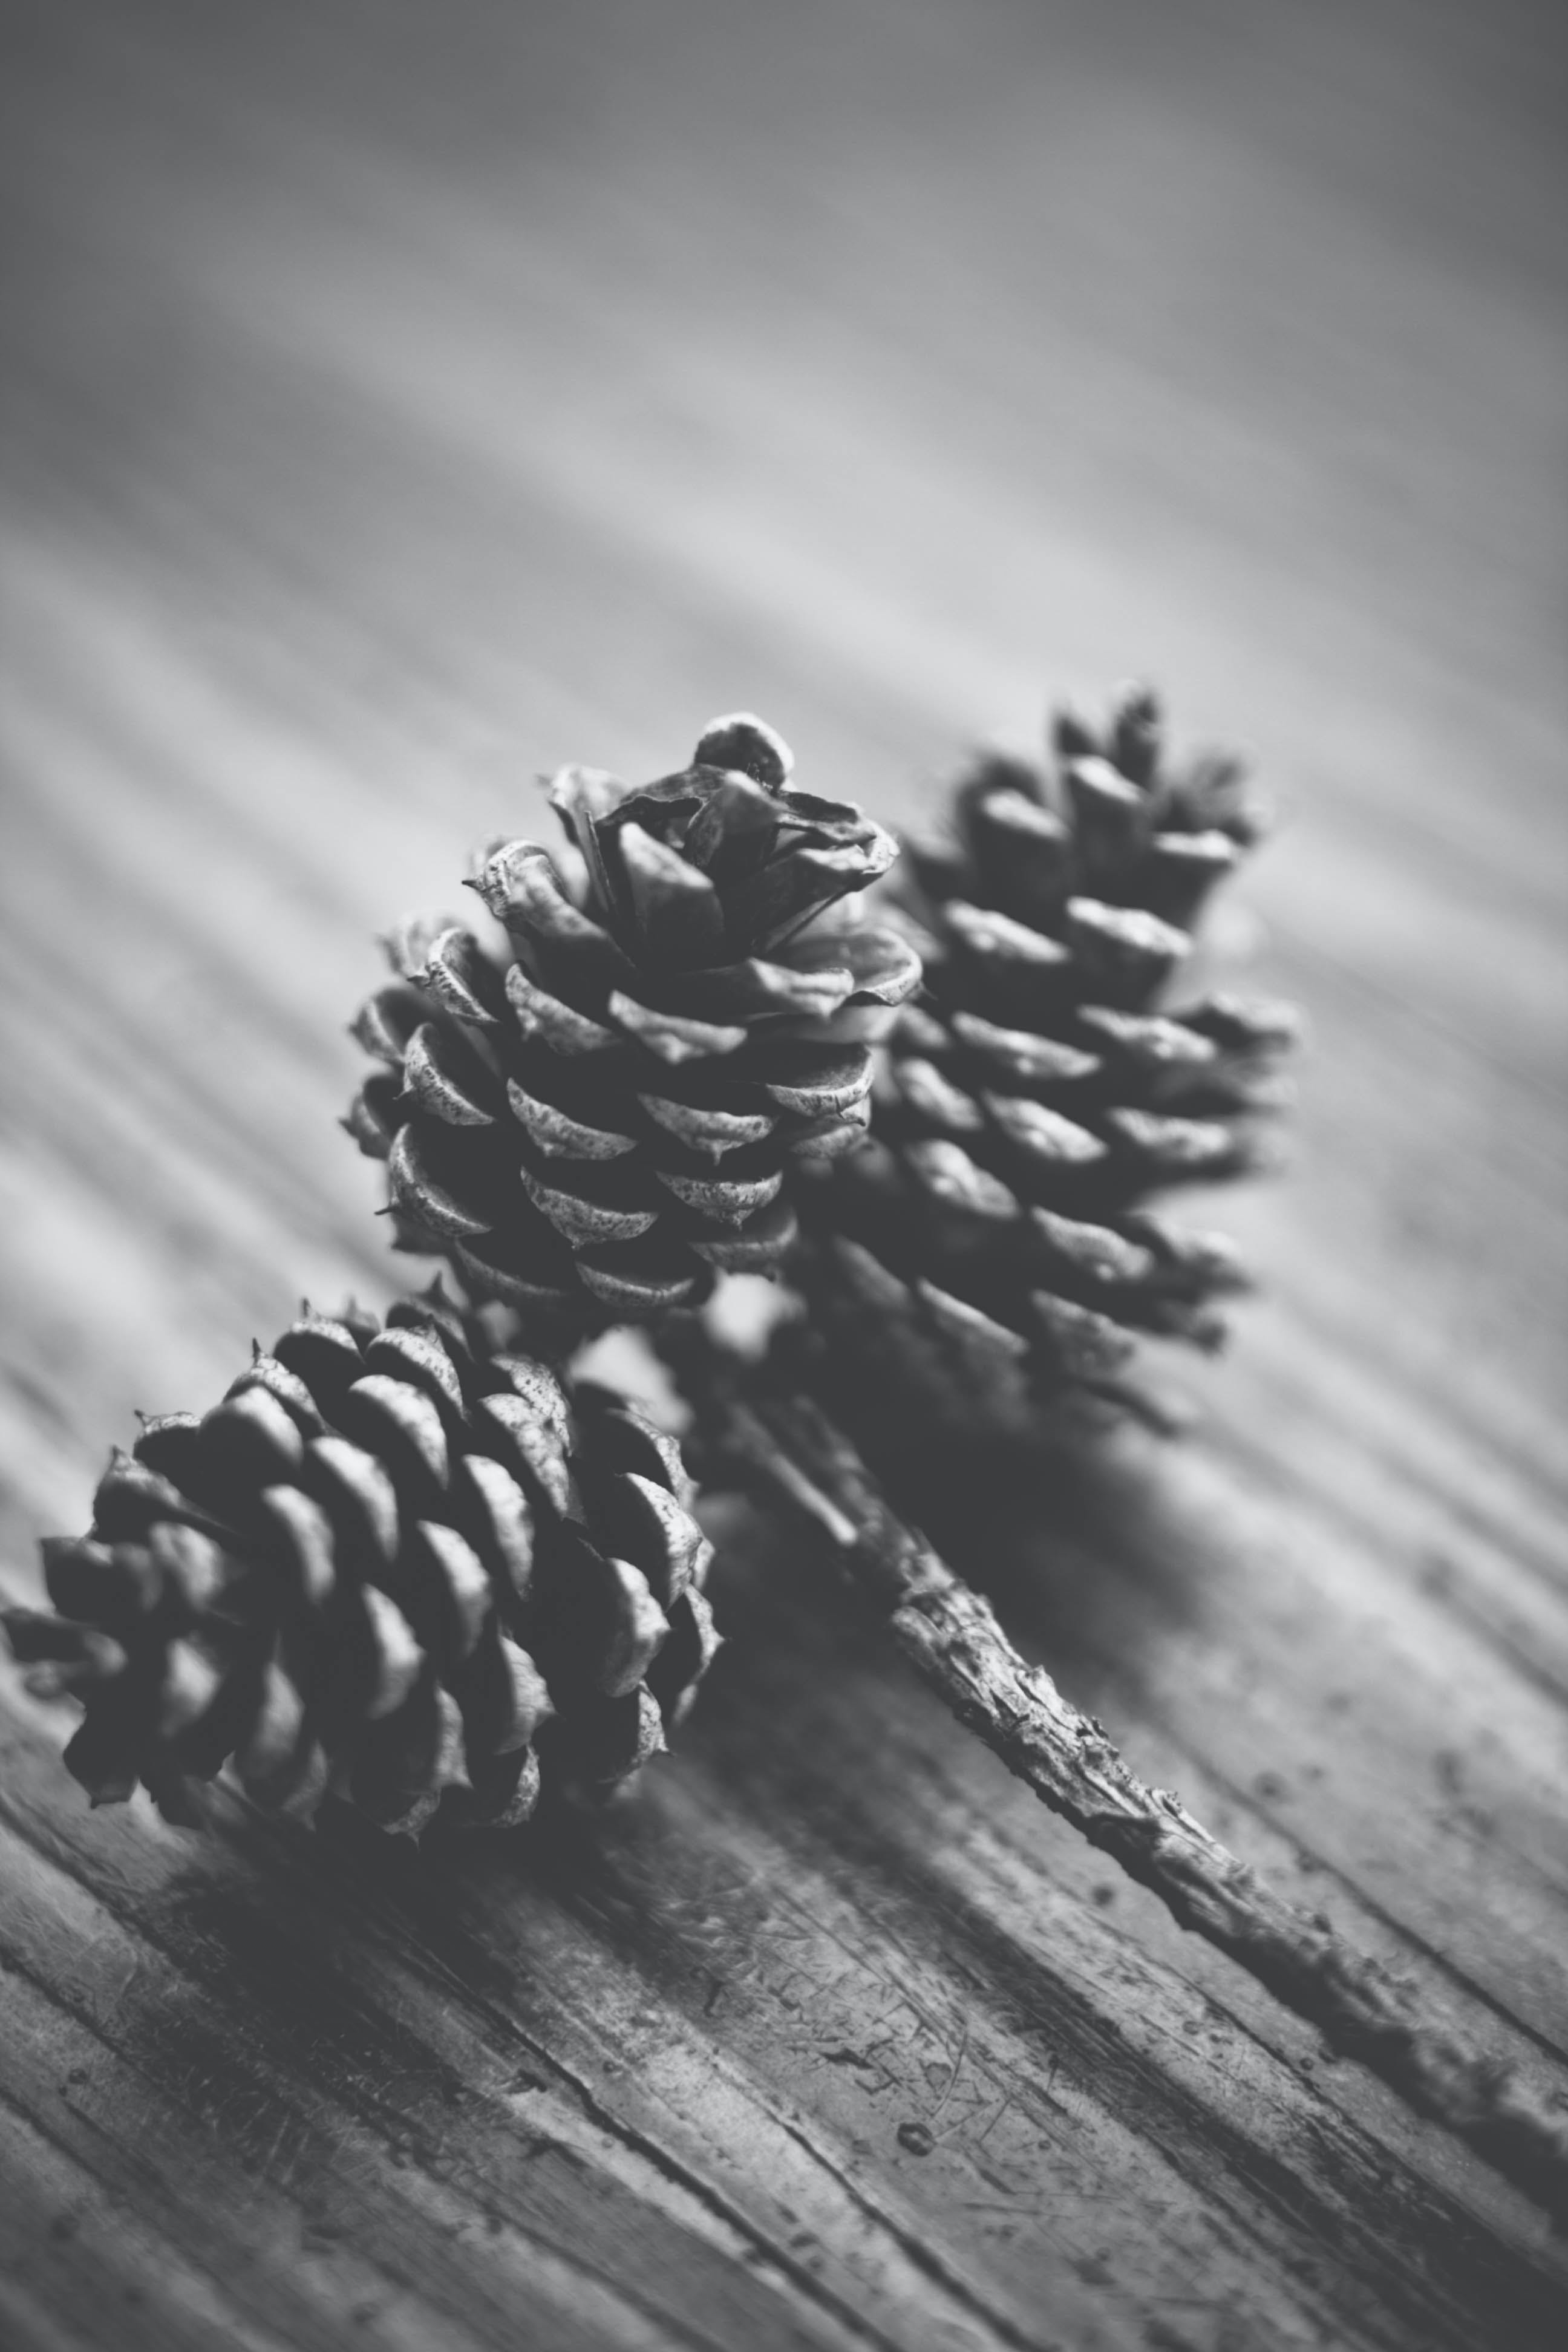 Grayscale Photography of Three Pinecones on Wooden Surface